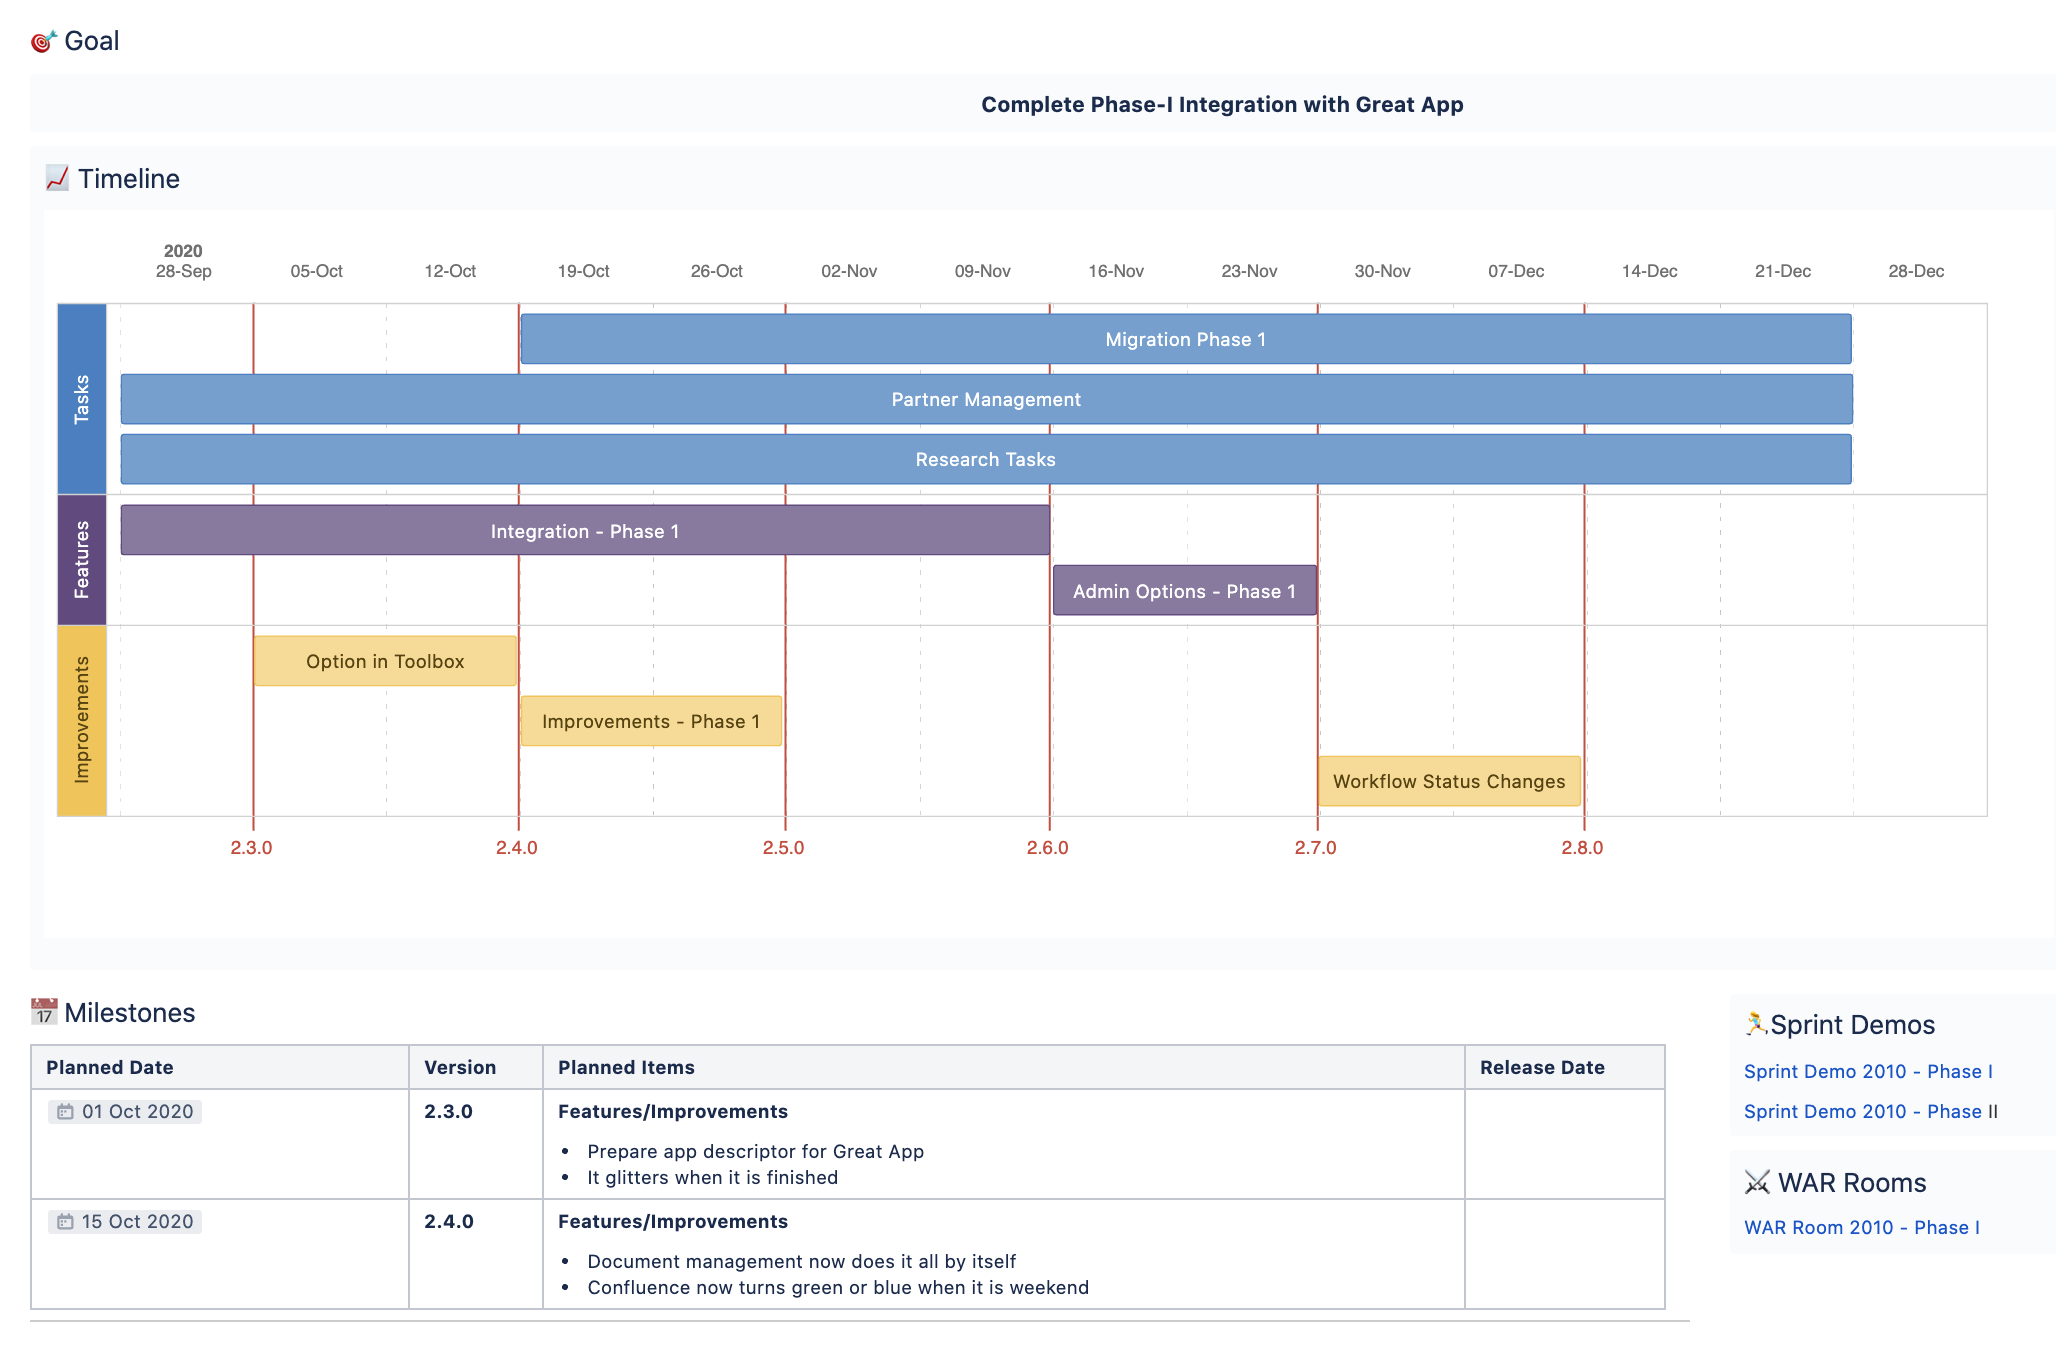 roadmap-in-confluence-timeline-and-milestones